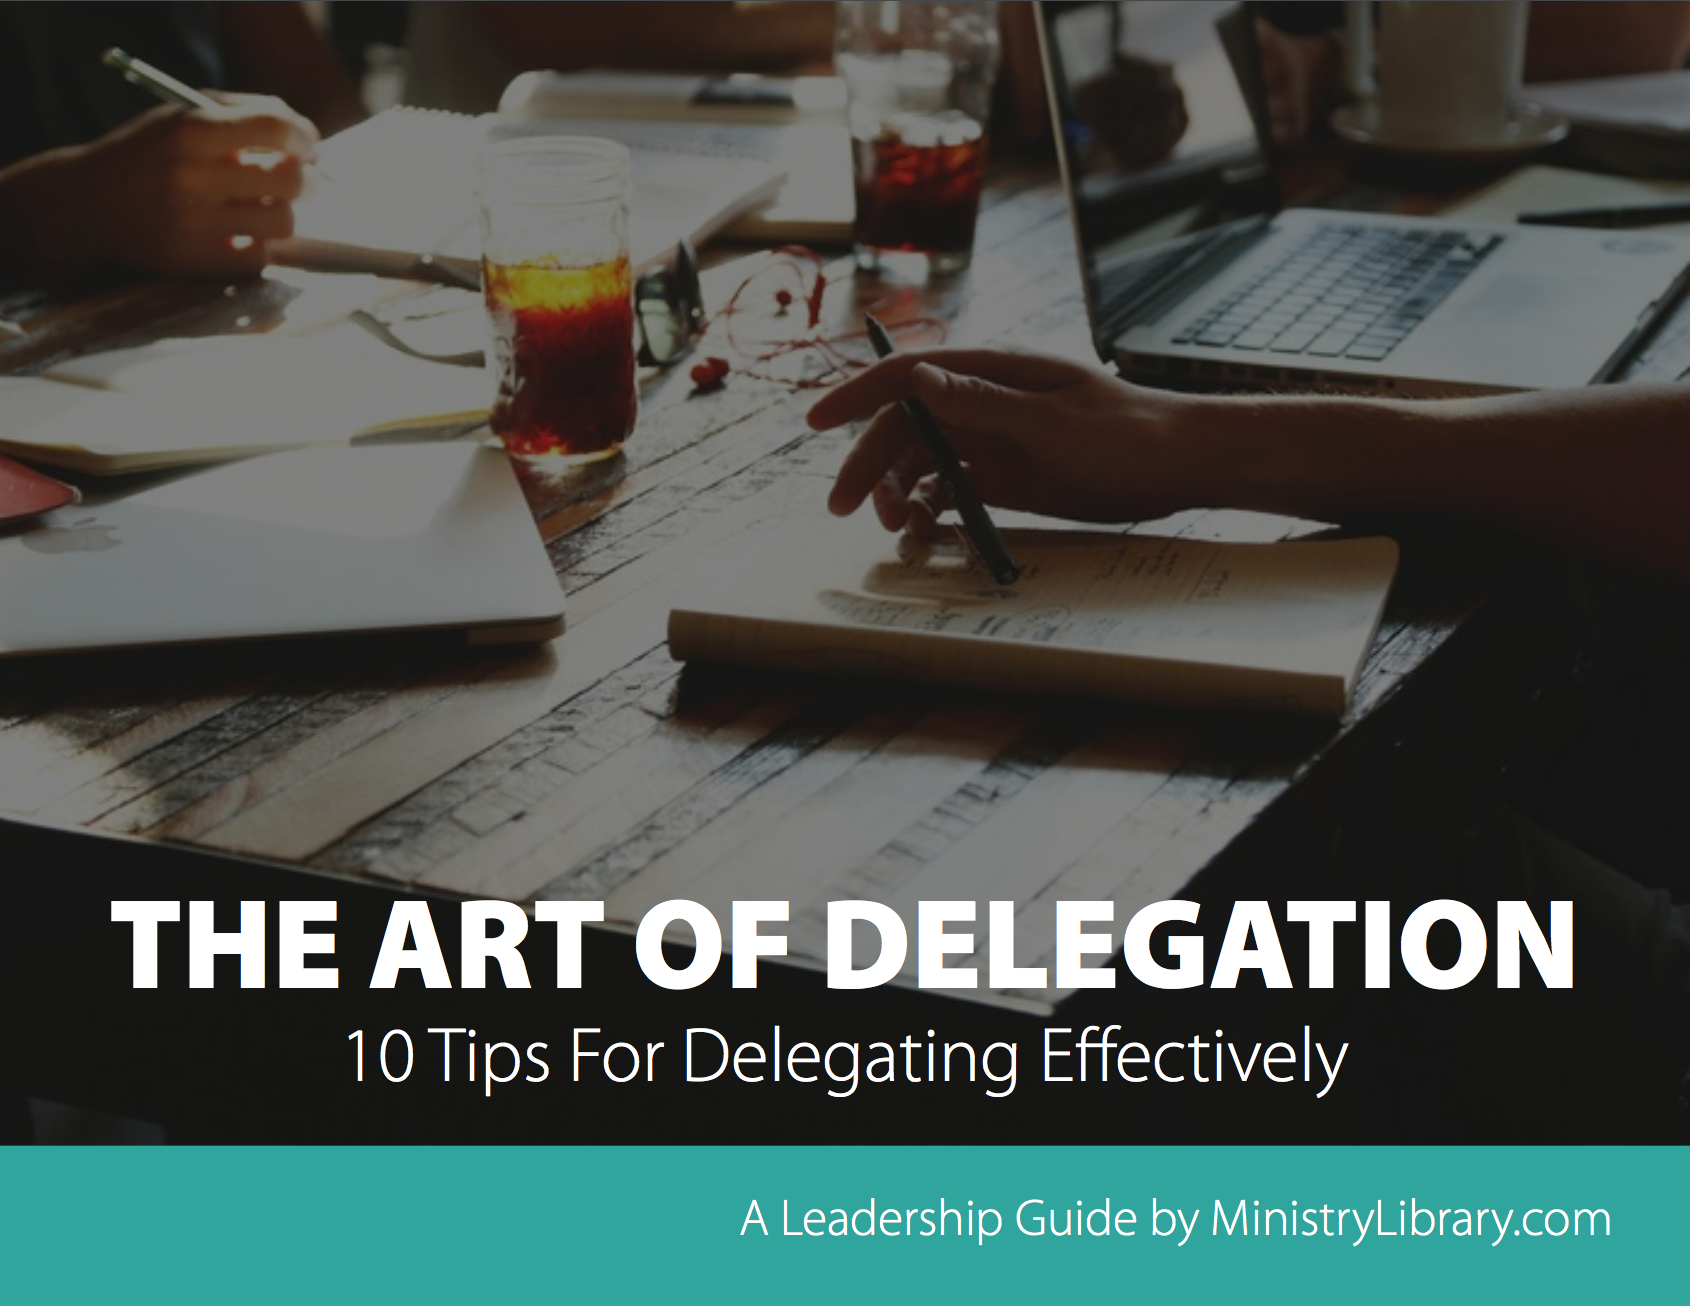 The Art of Delegation Free Ebook